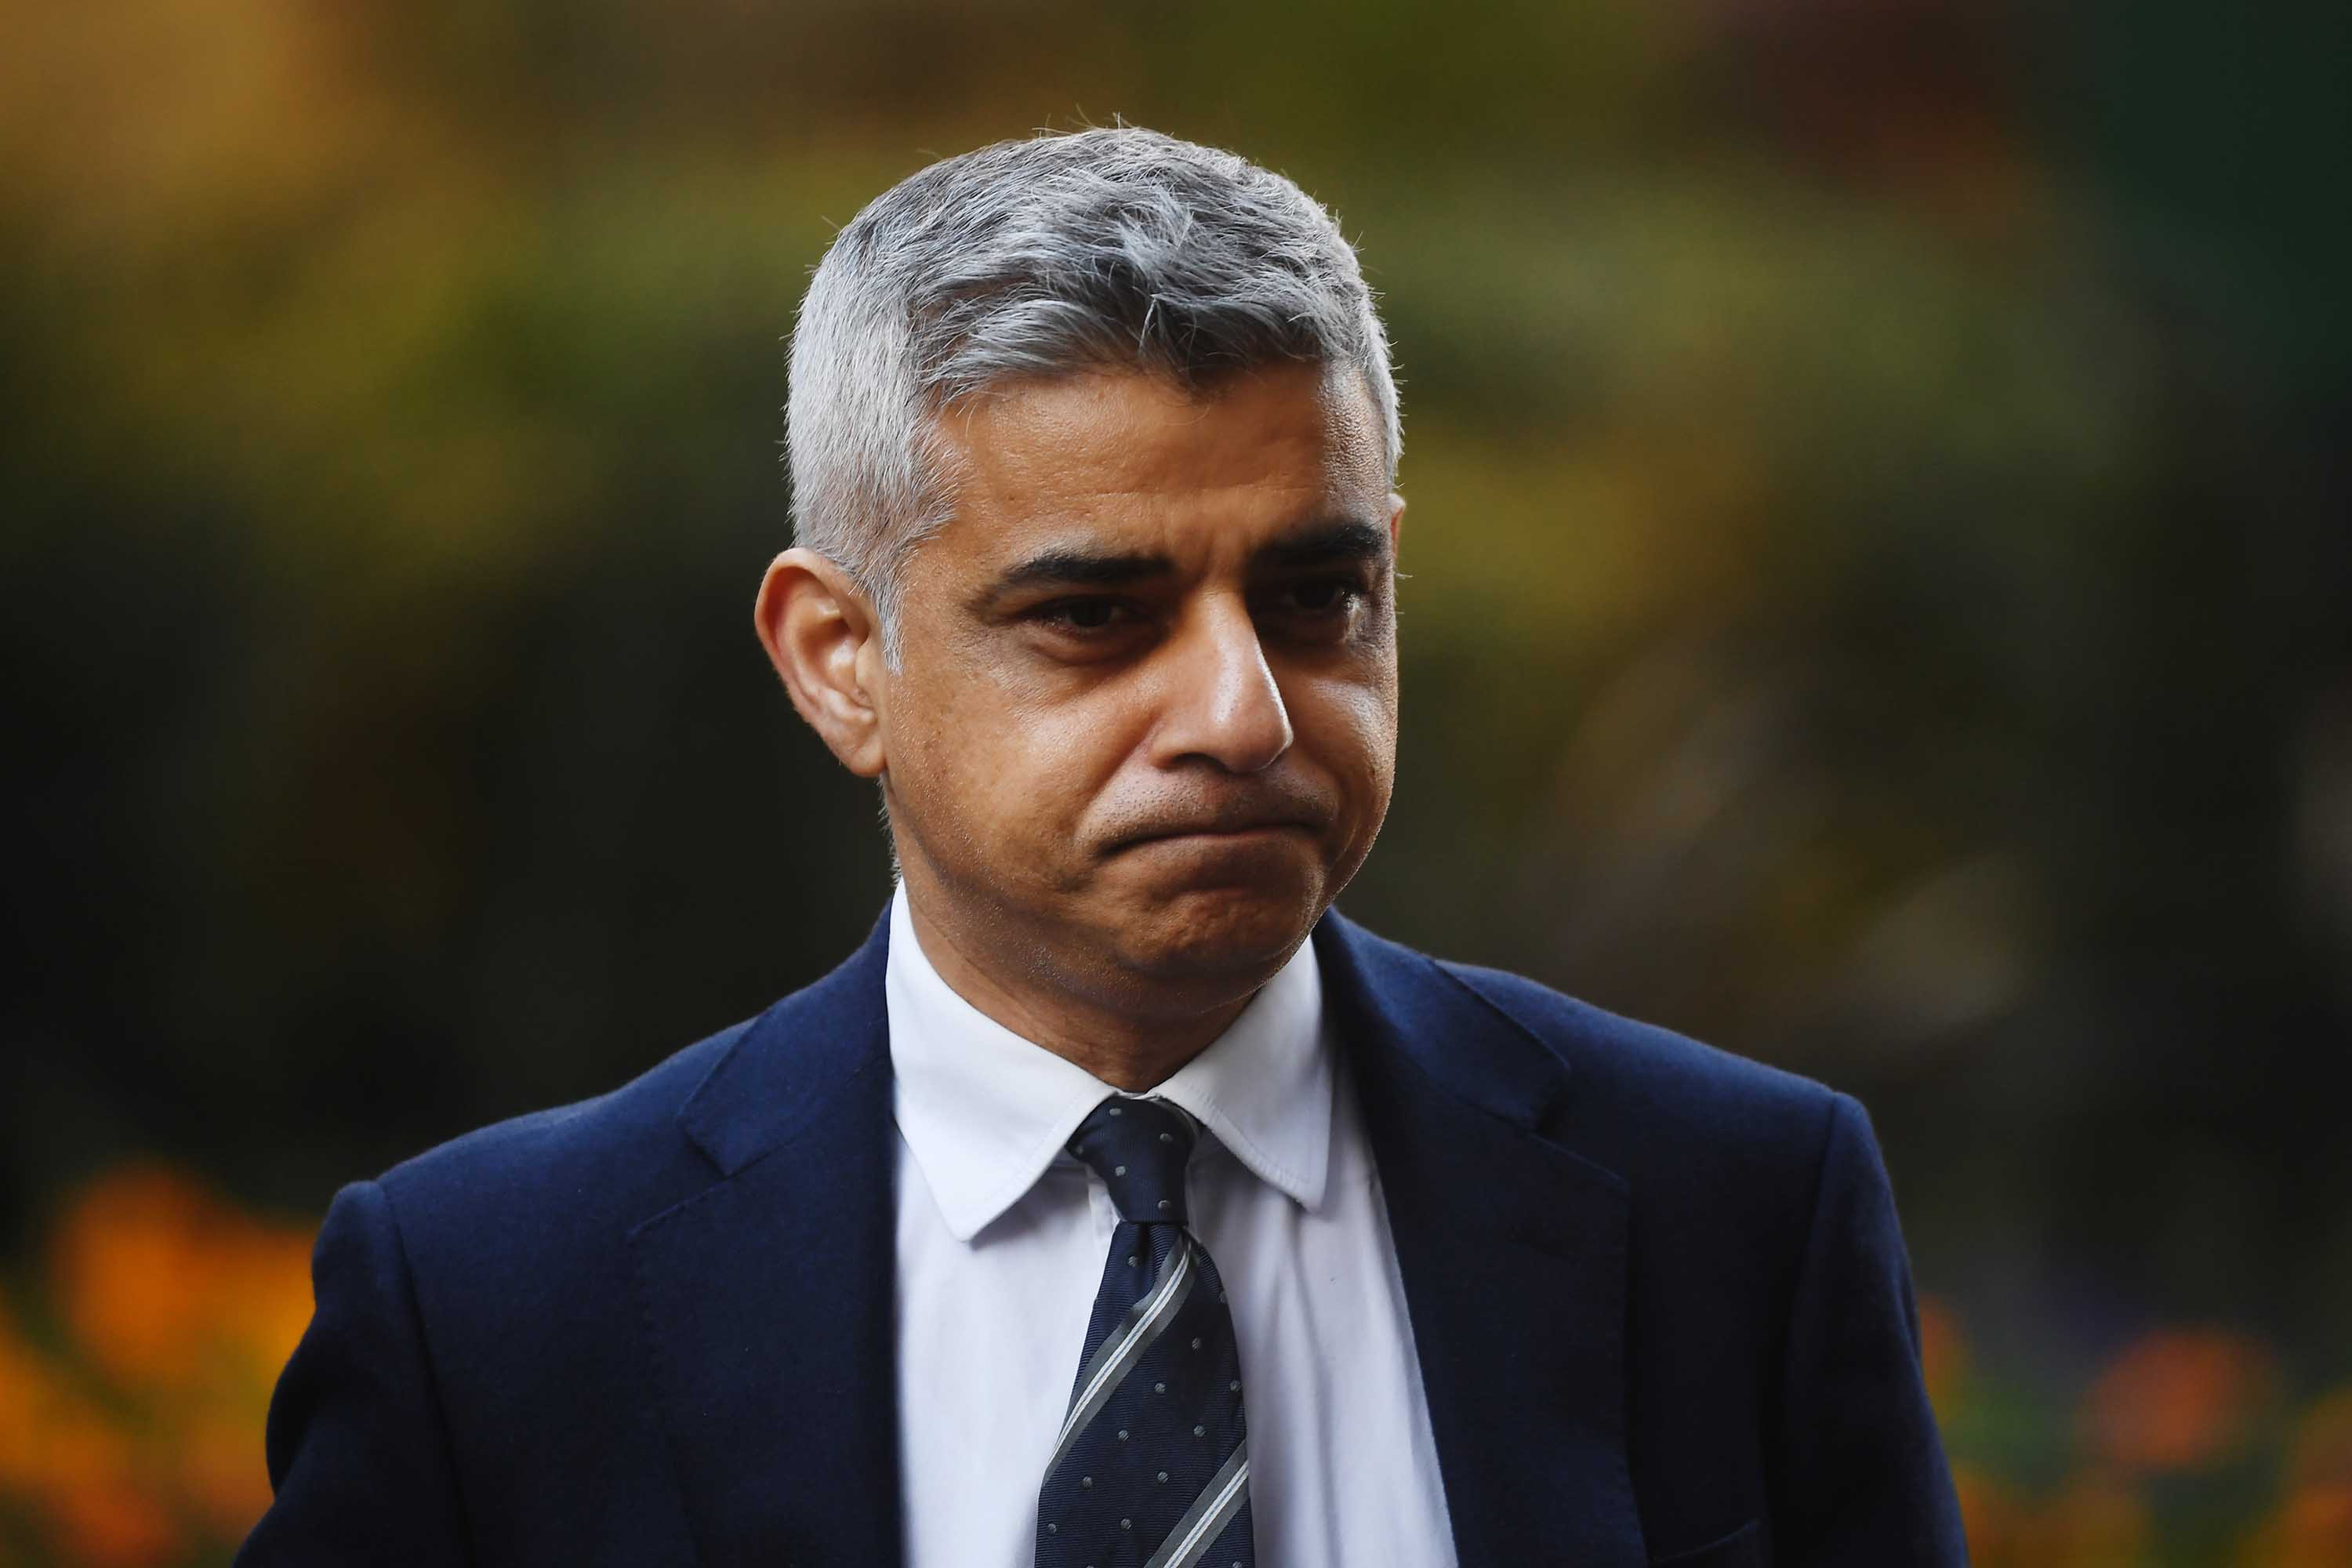 London Mayor Sadiq Khan arrives in Downing Street in London ahead of government briefing on March 16.